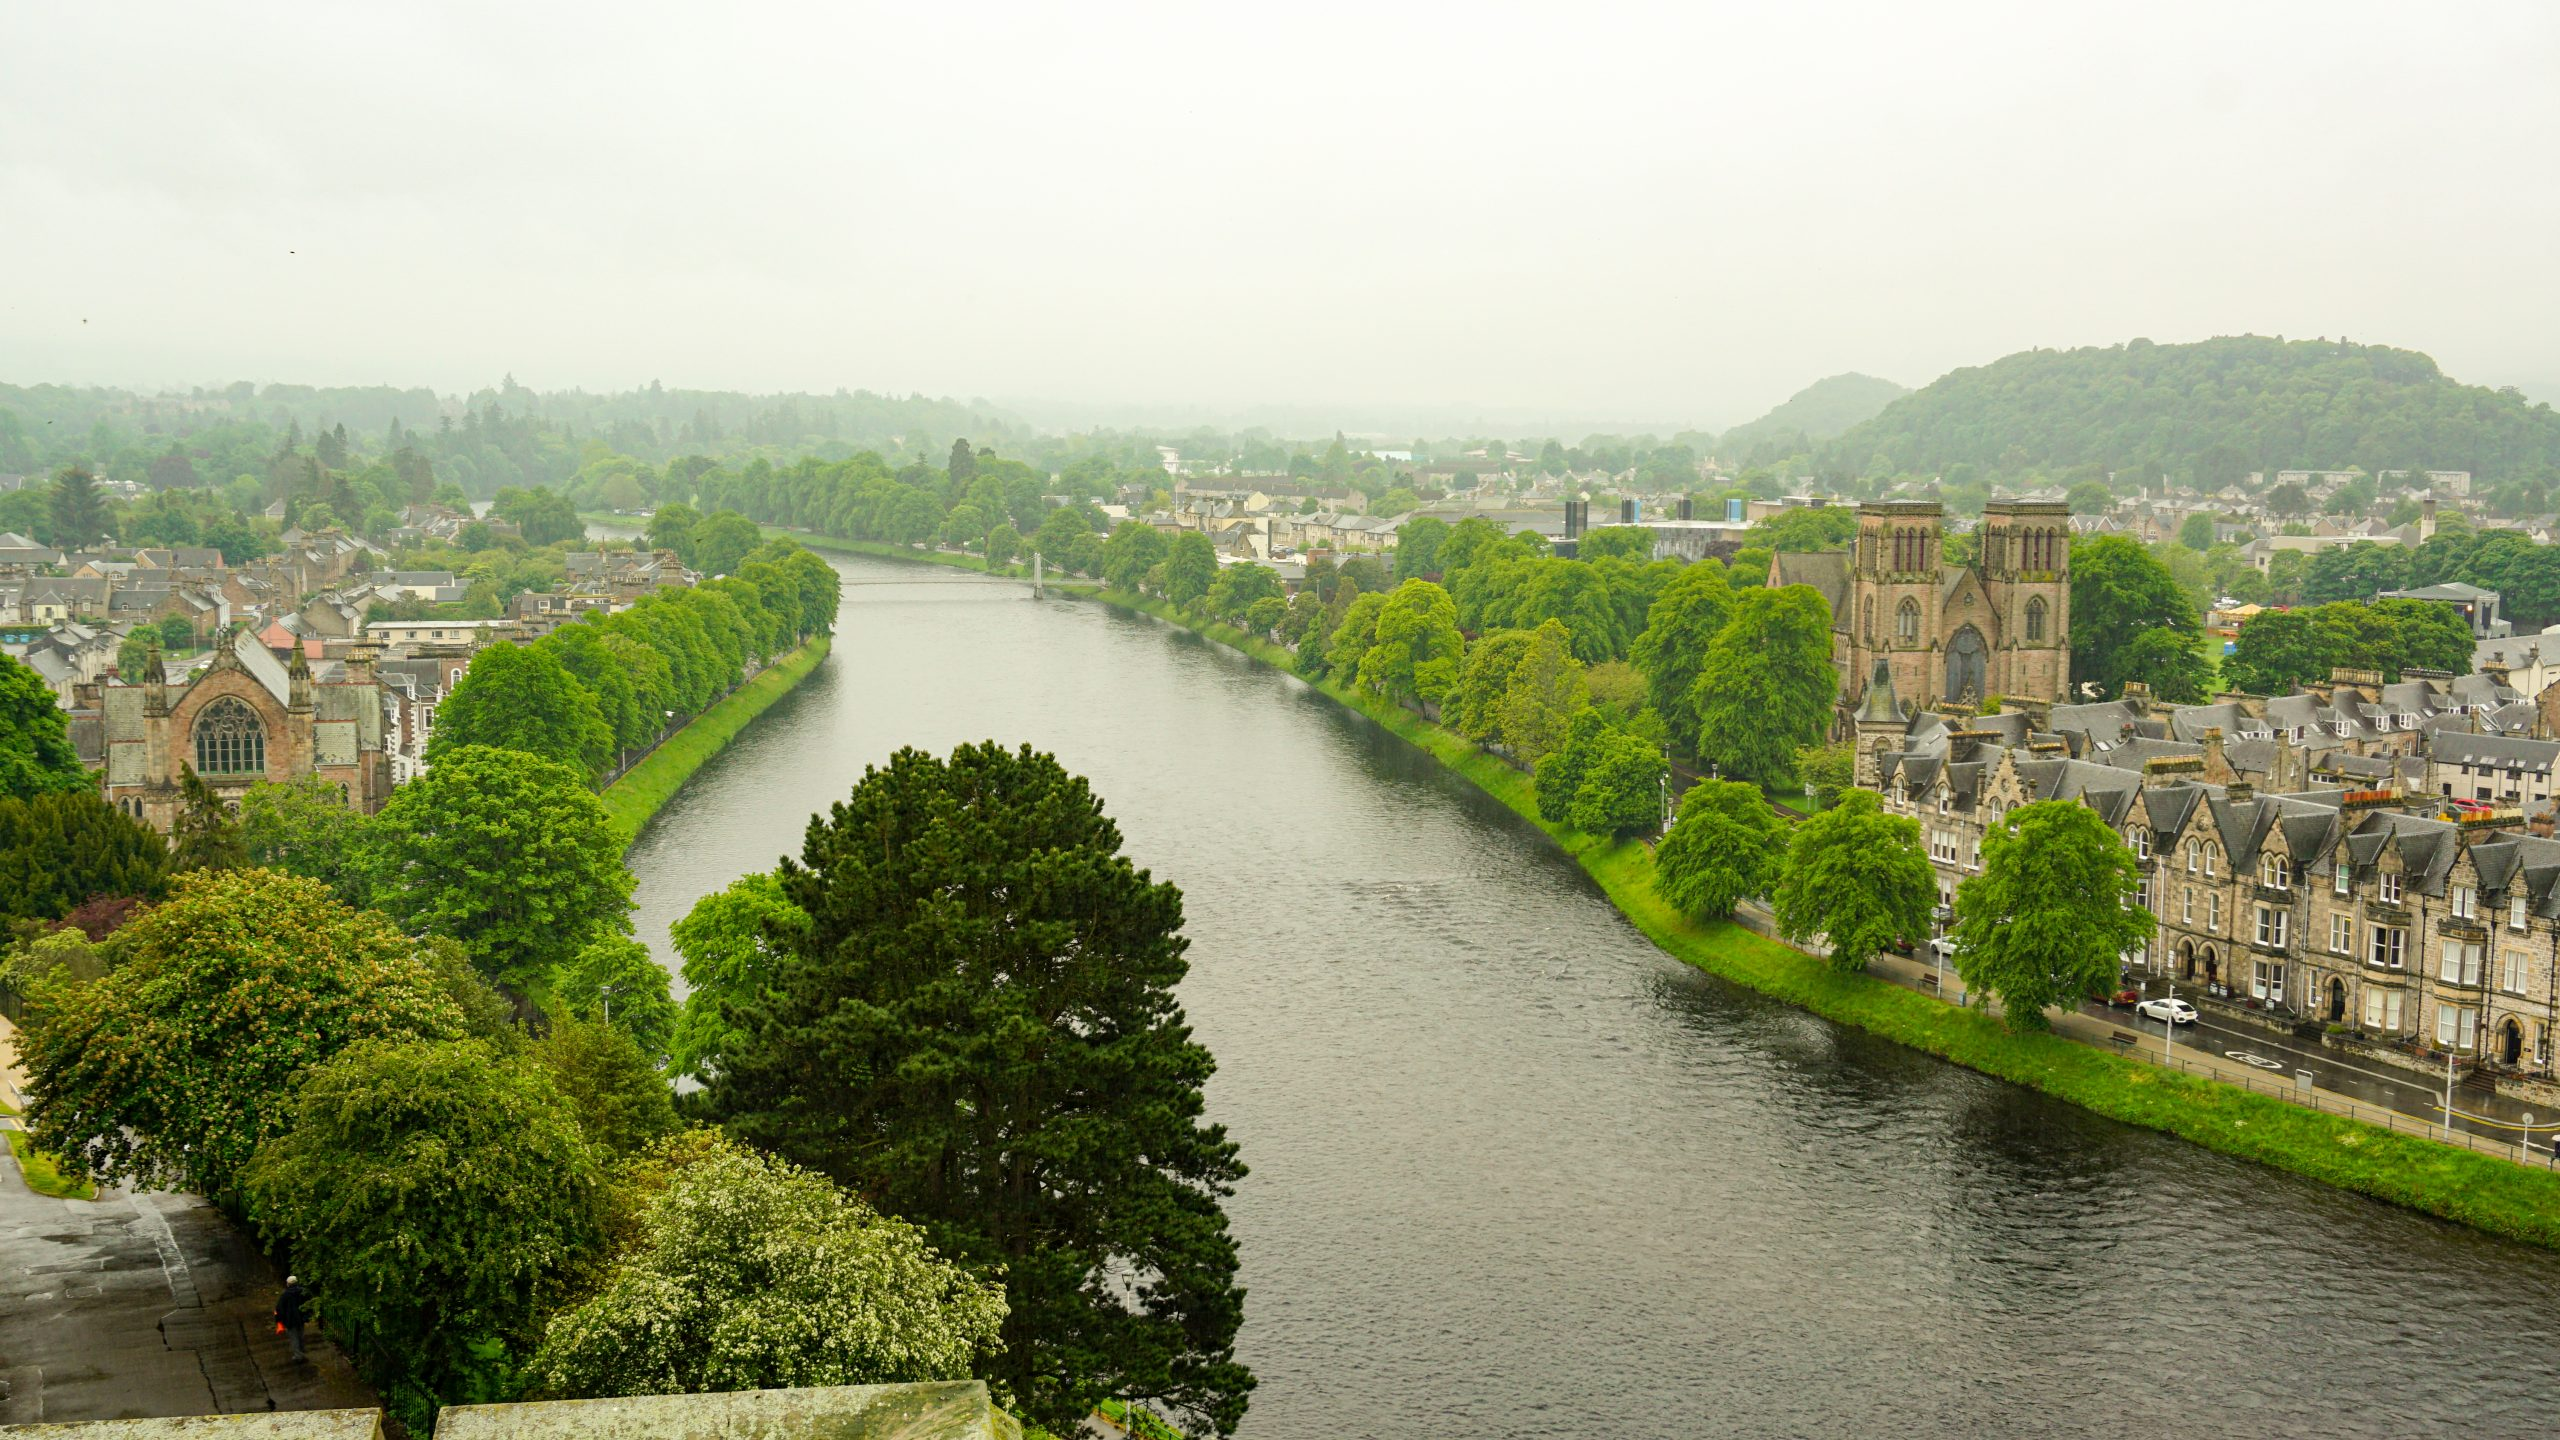 3 Days in Inverness: An itinerary for first-time visitors (including a day-trip to Loch Ness)